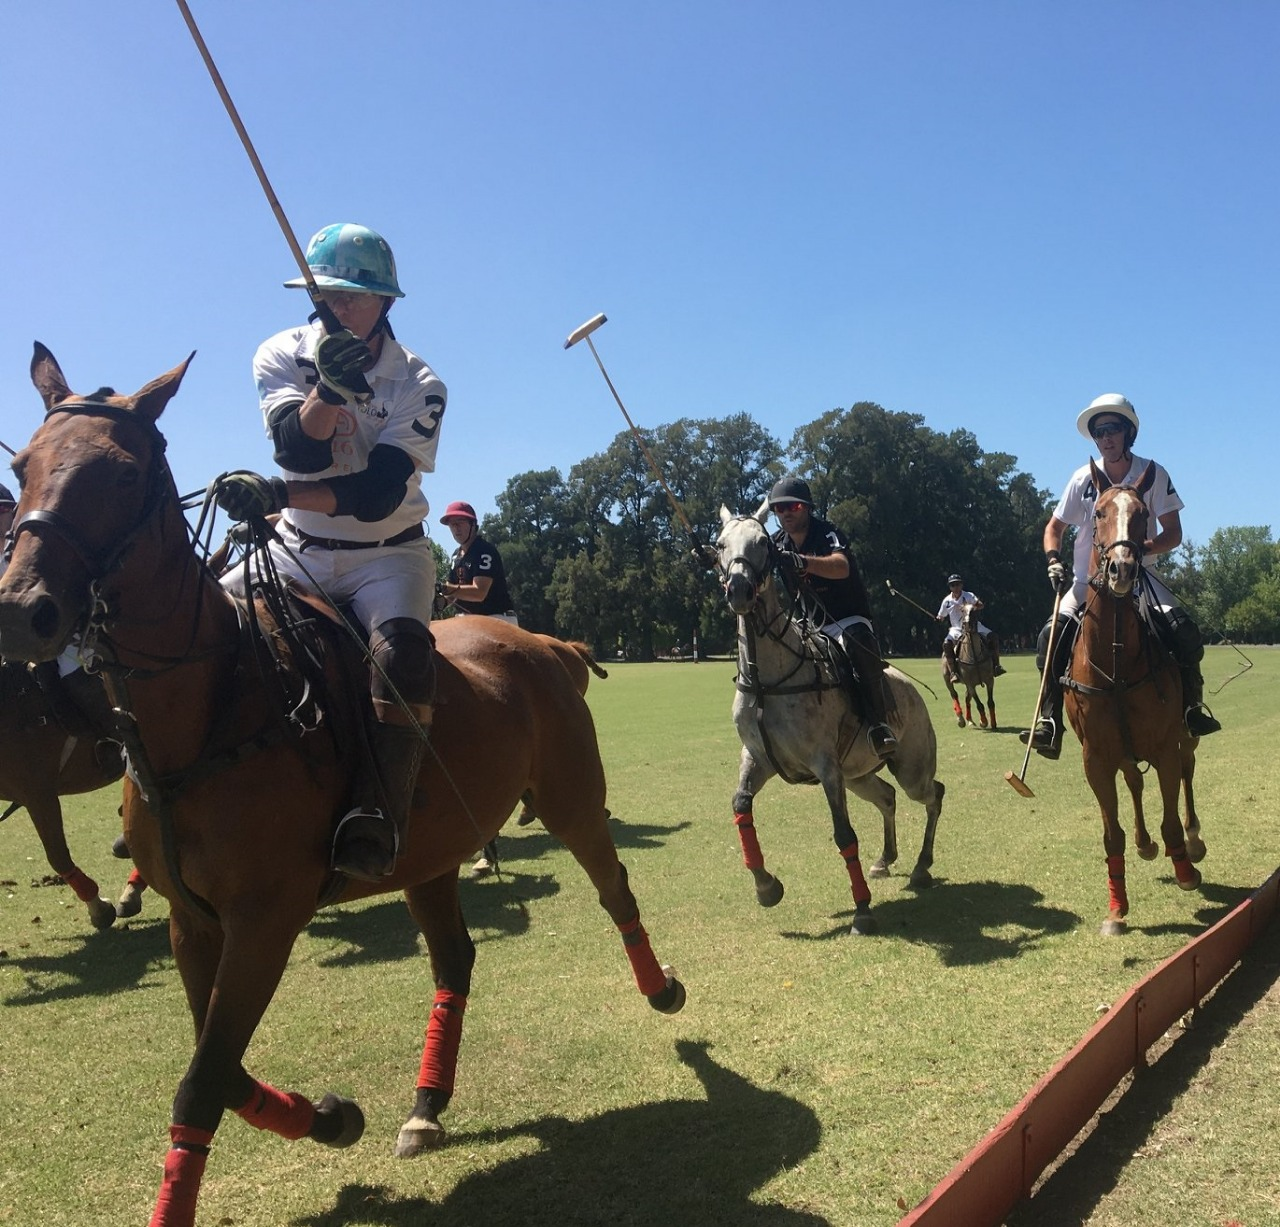 polo players during a game in argentina